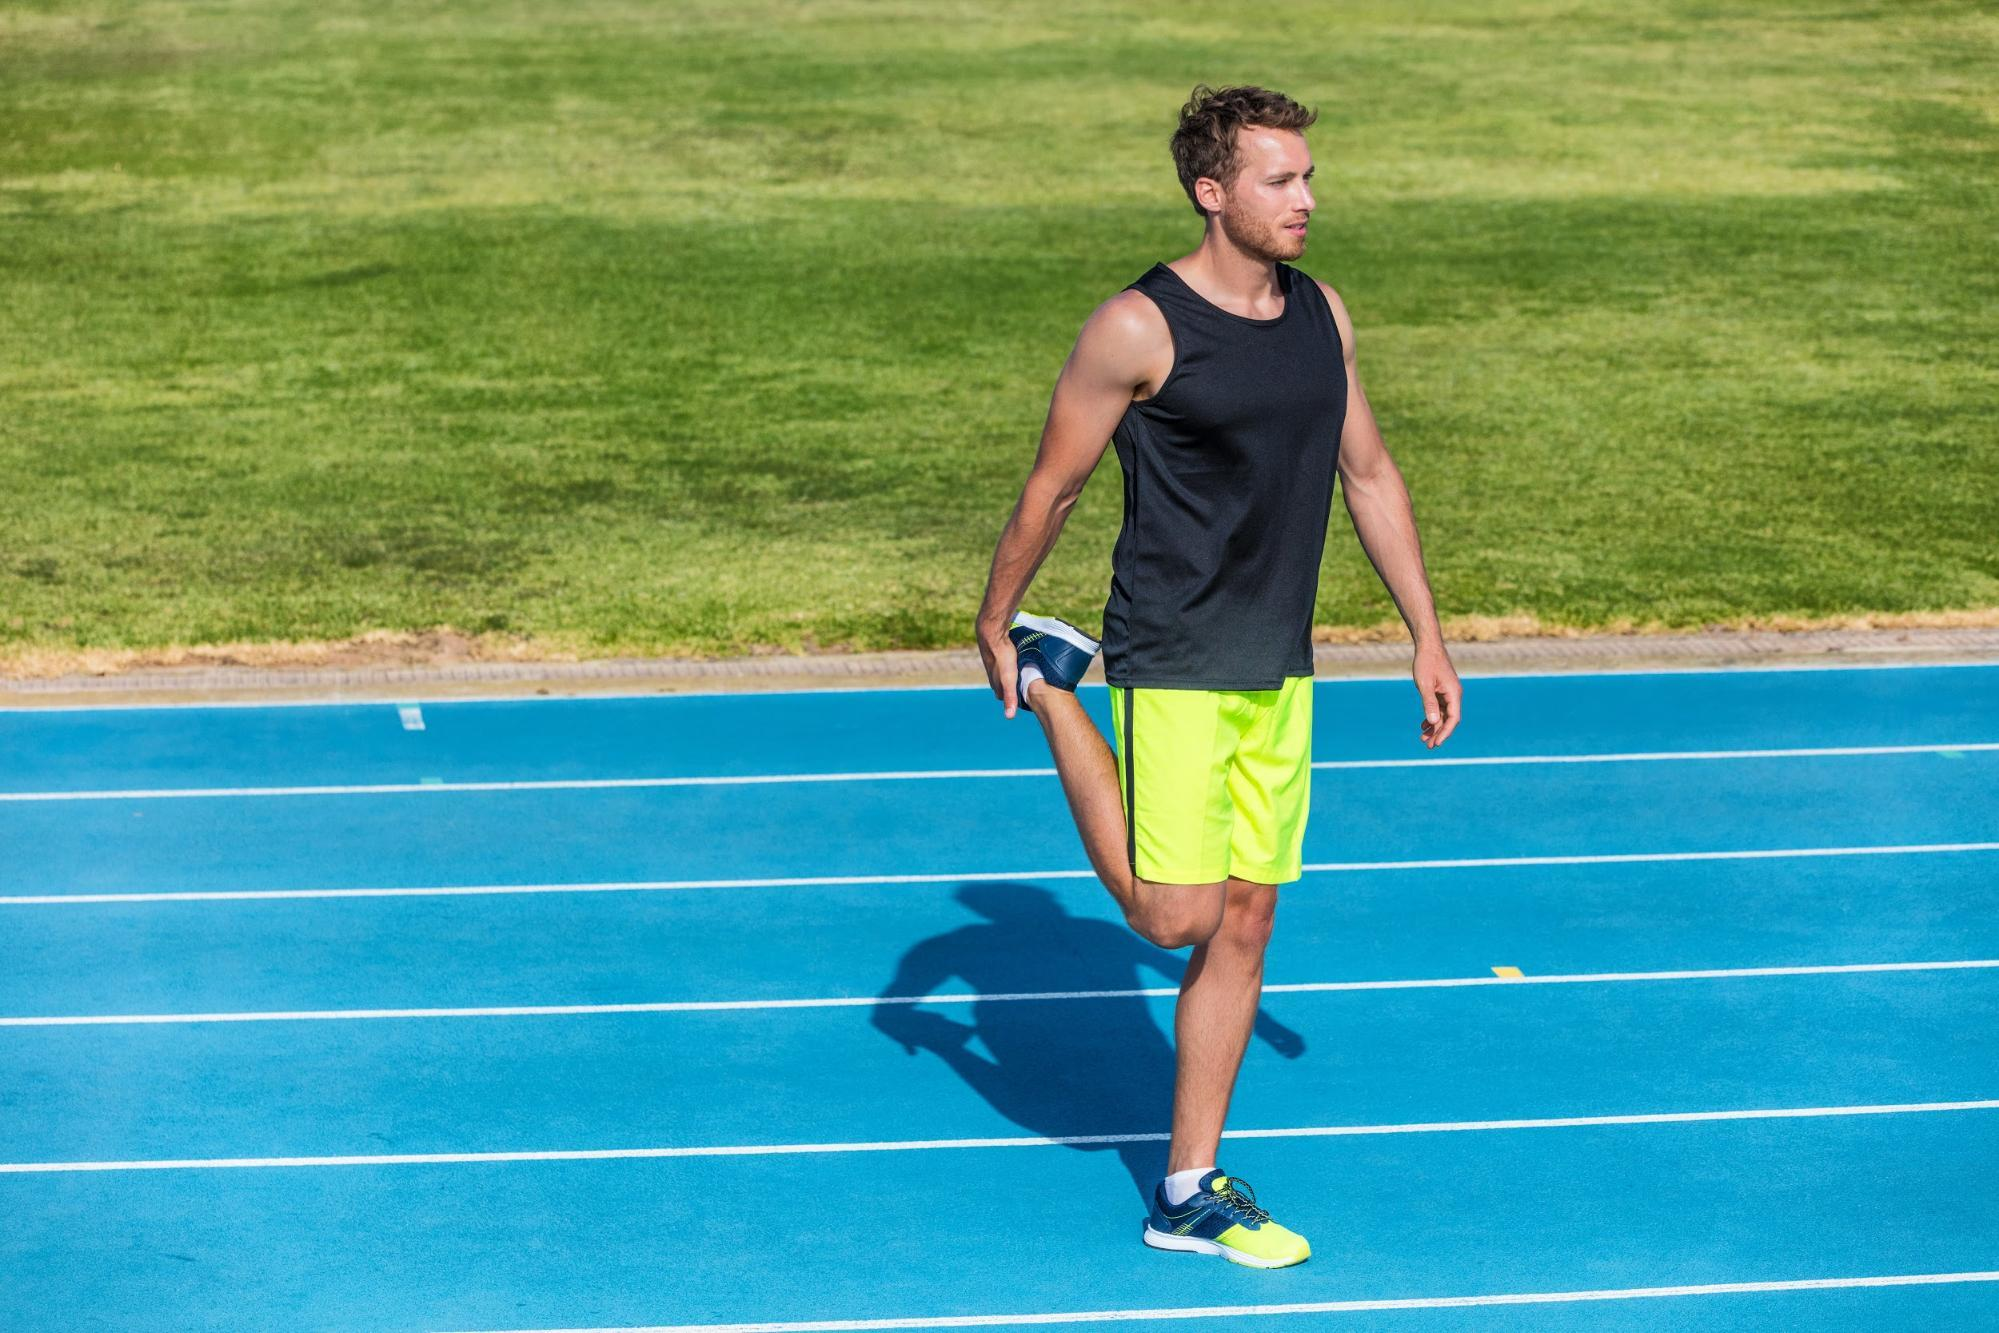 male stretching leg on running track